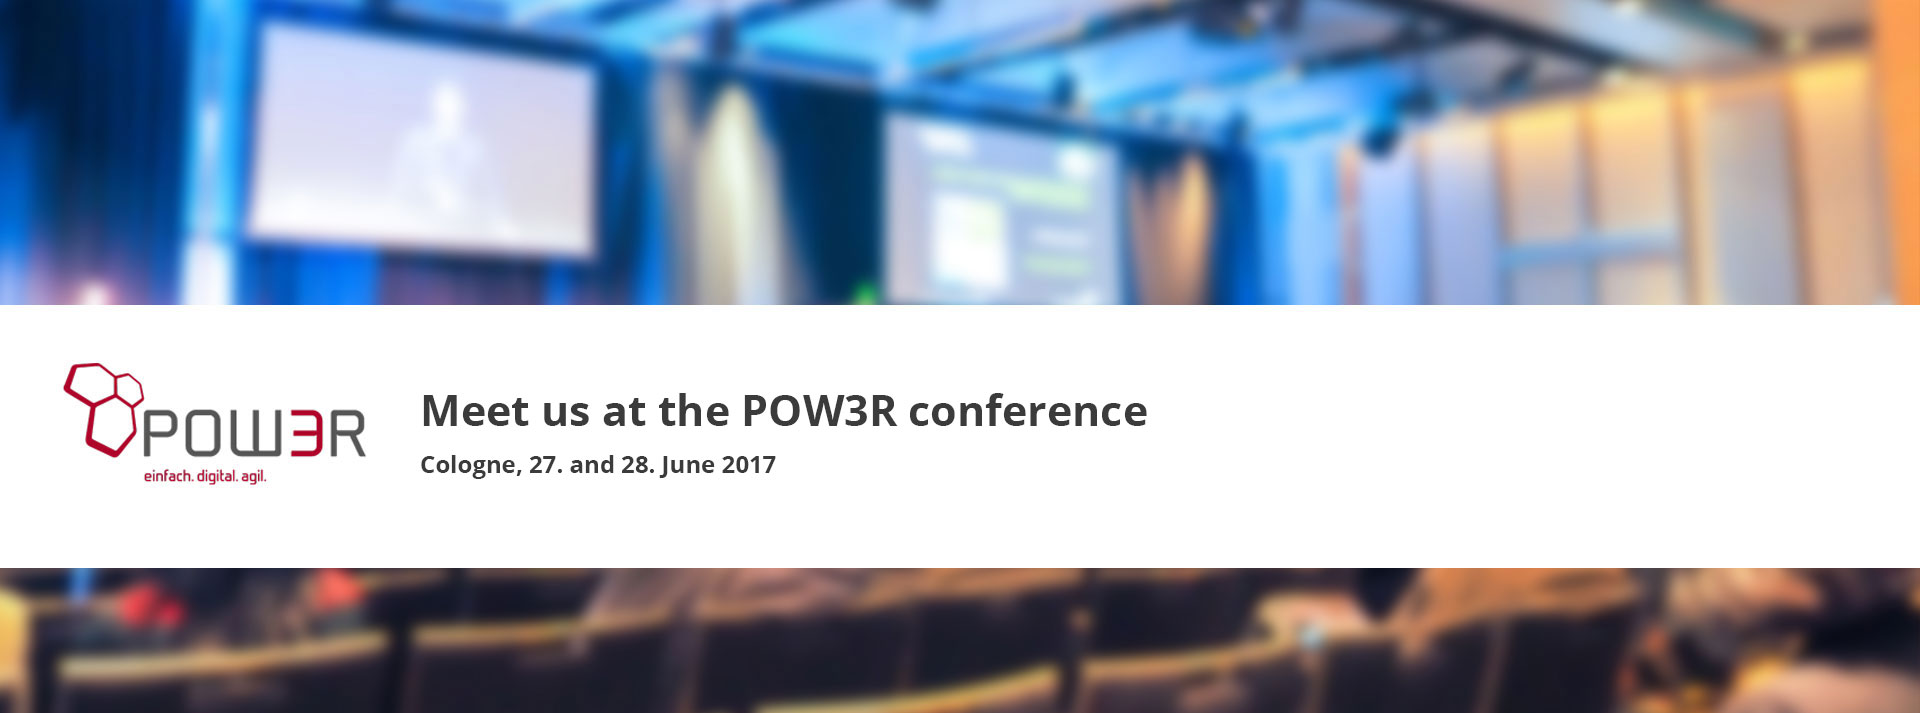 power koeln ibm edi midrange magazin conference